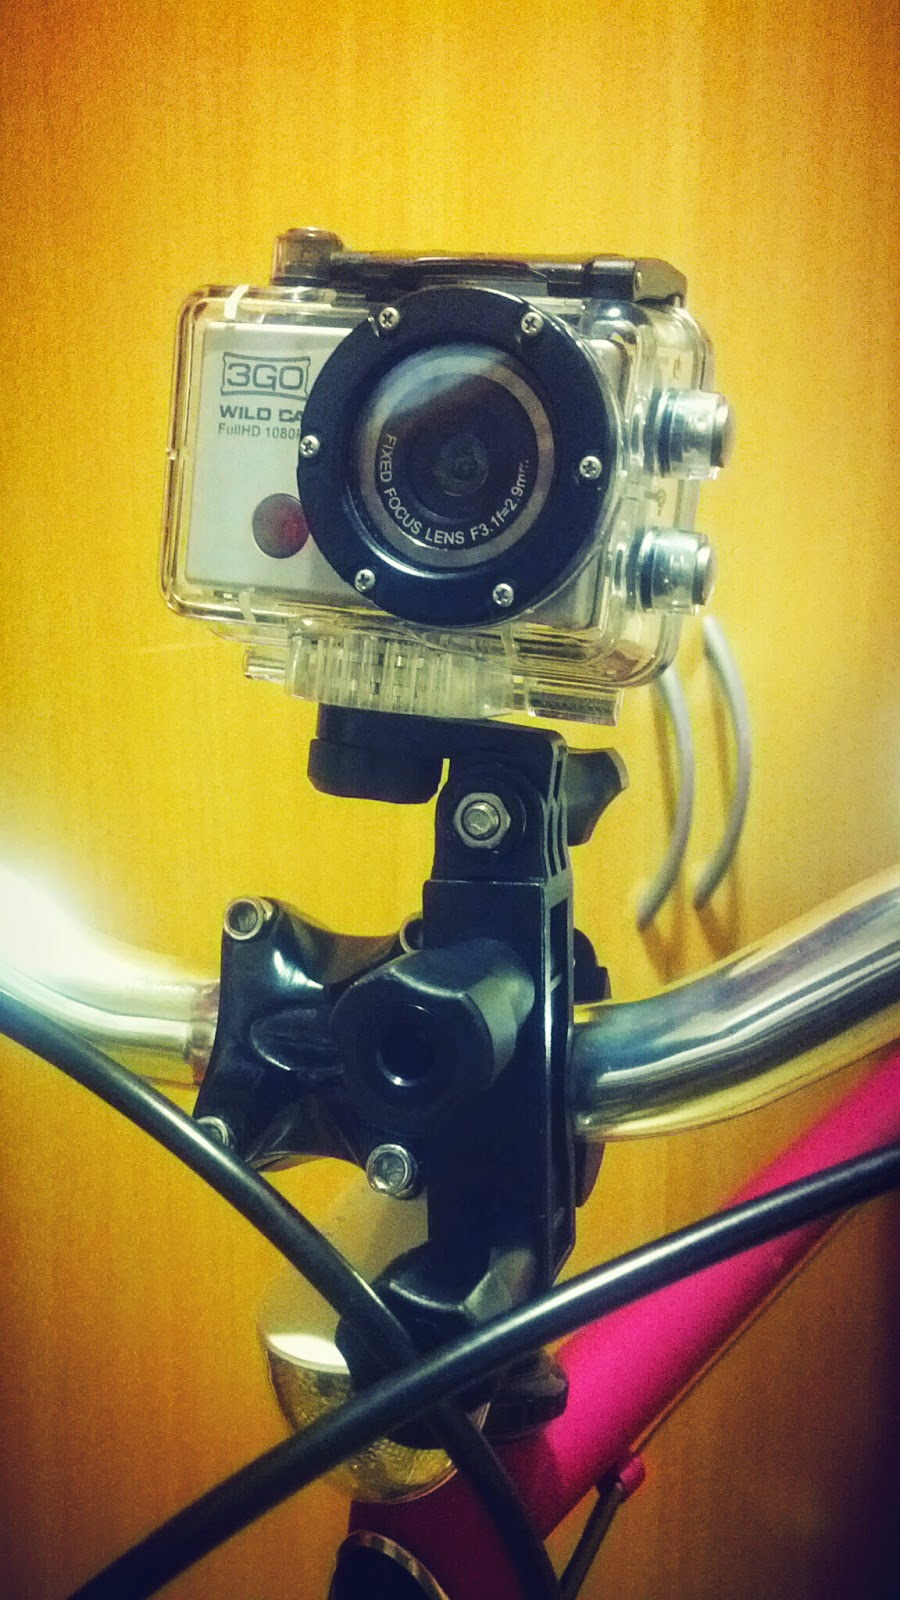 PRODUCT REVIEW: 3GO Wild Cam | Share your fixed gear rides! GoPro